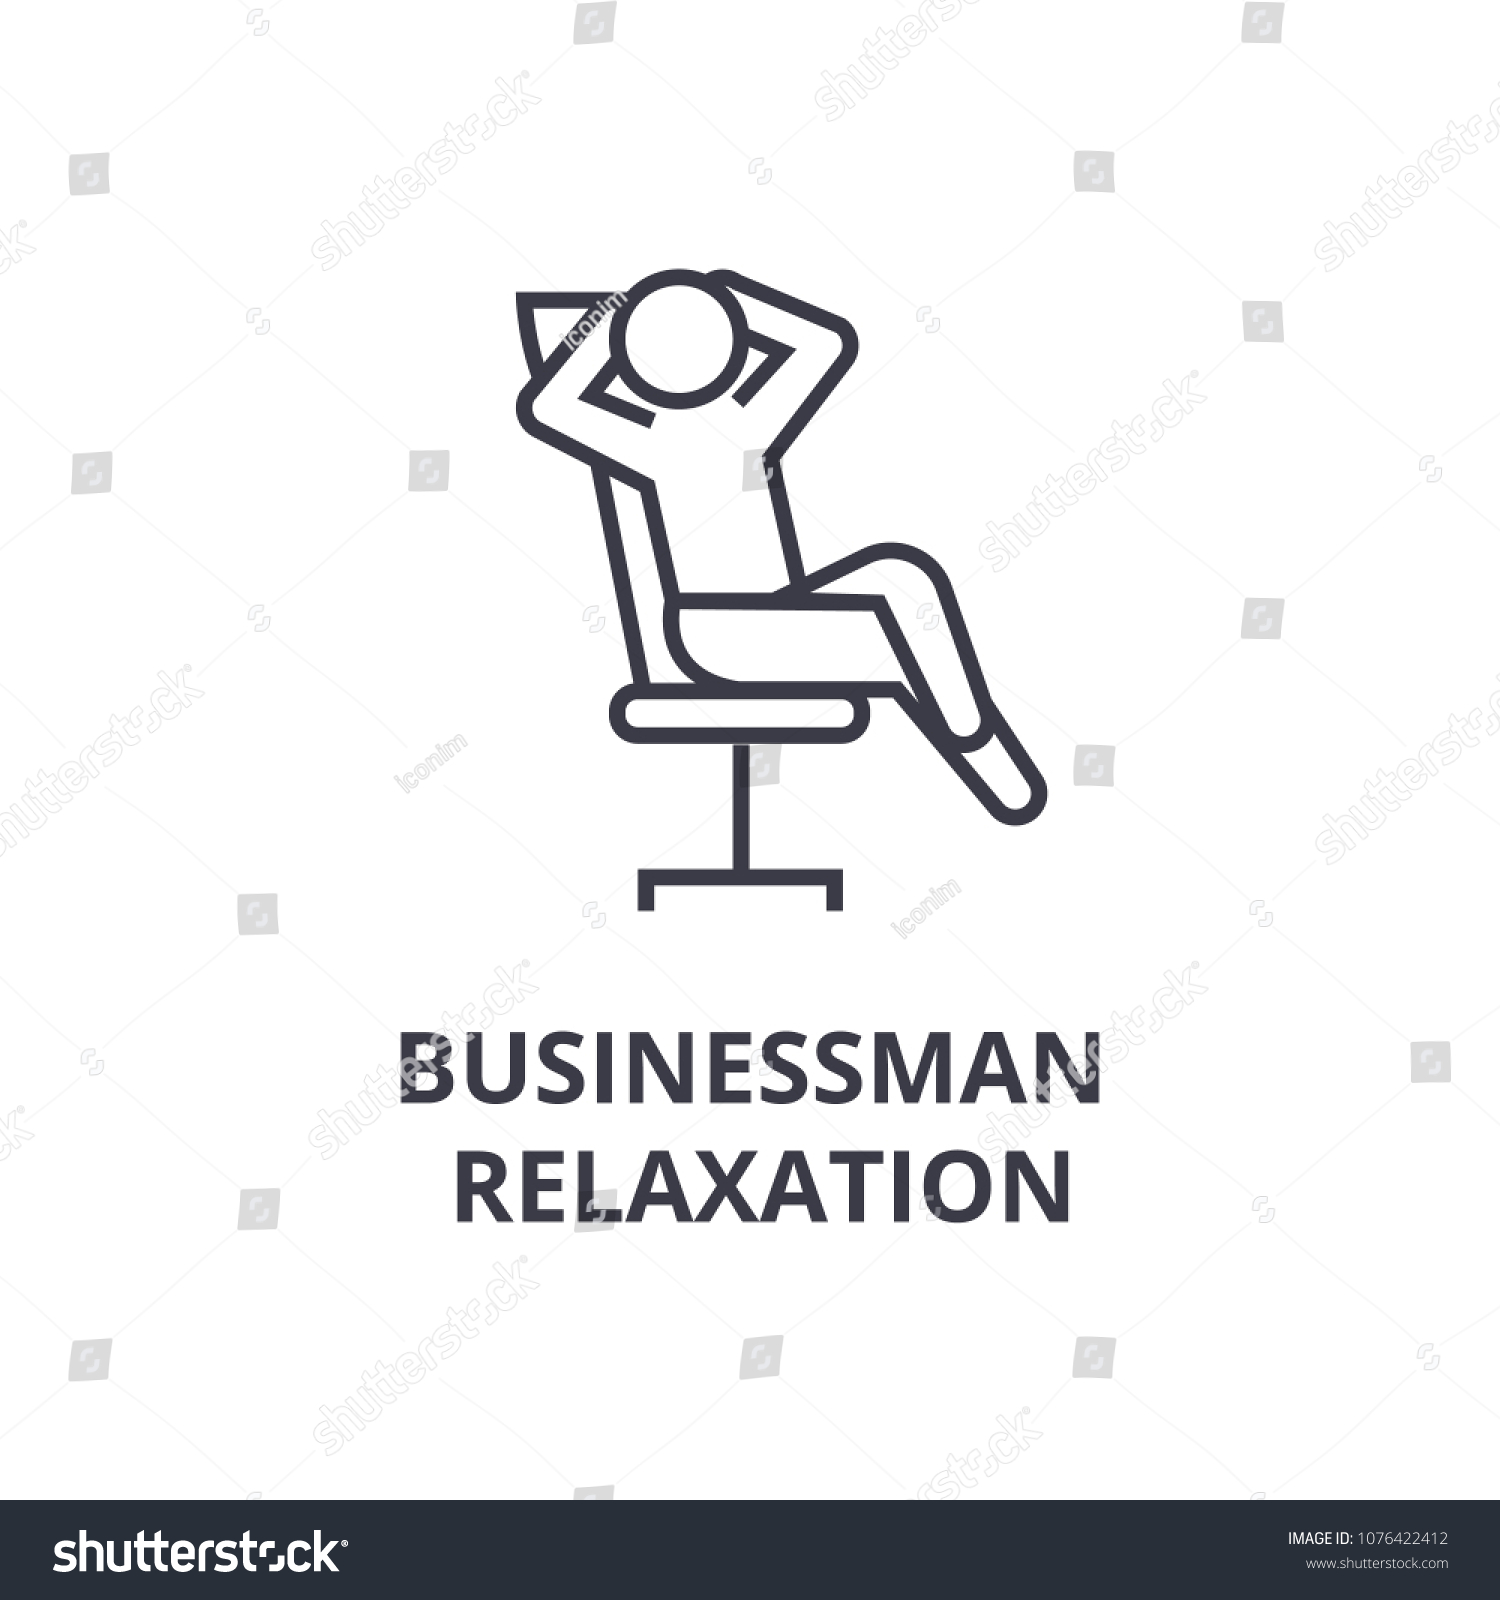 businessman relaxation thin line icon, sign, symbol, illustation, linear concept, vector